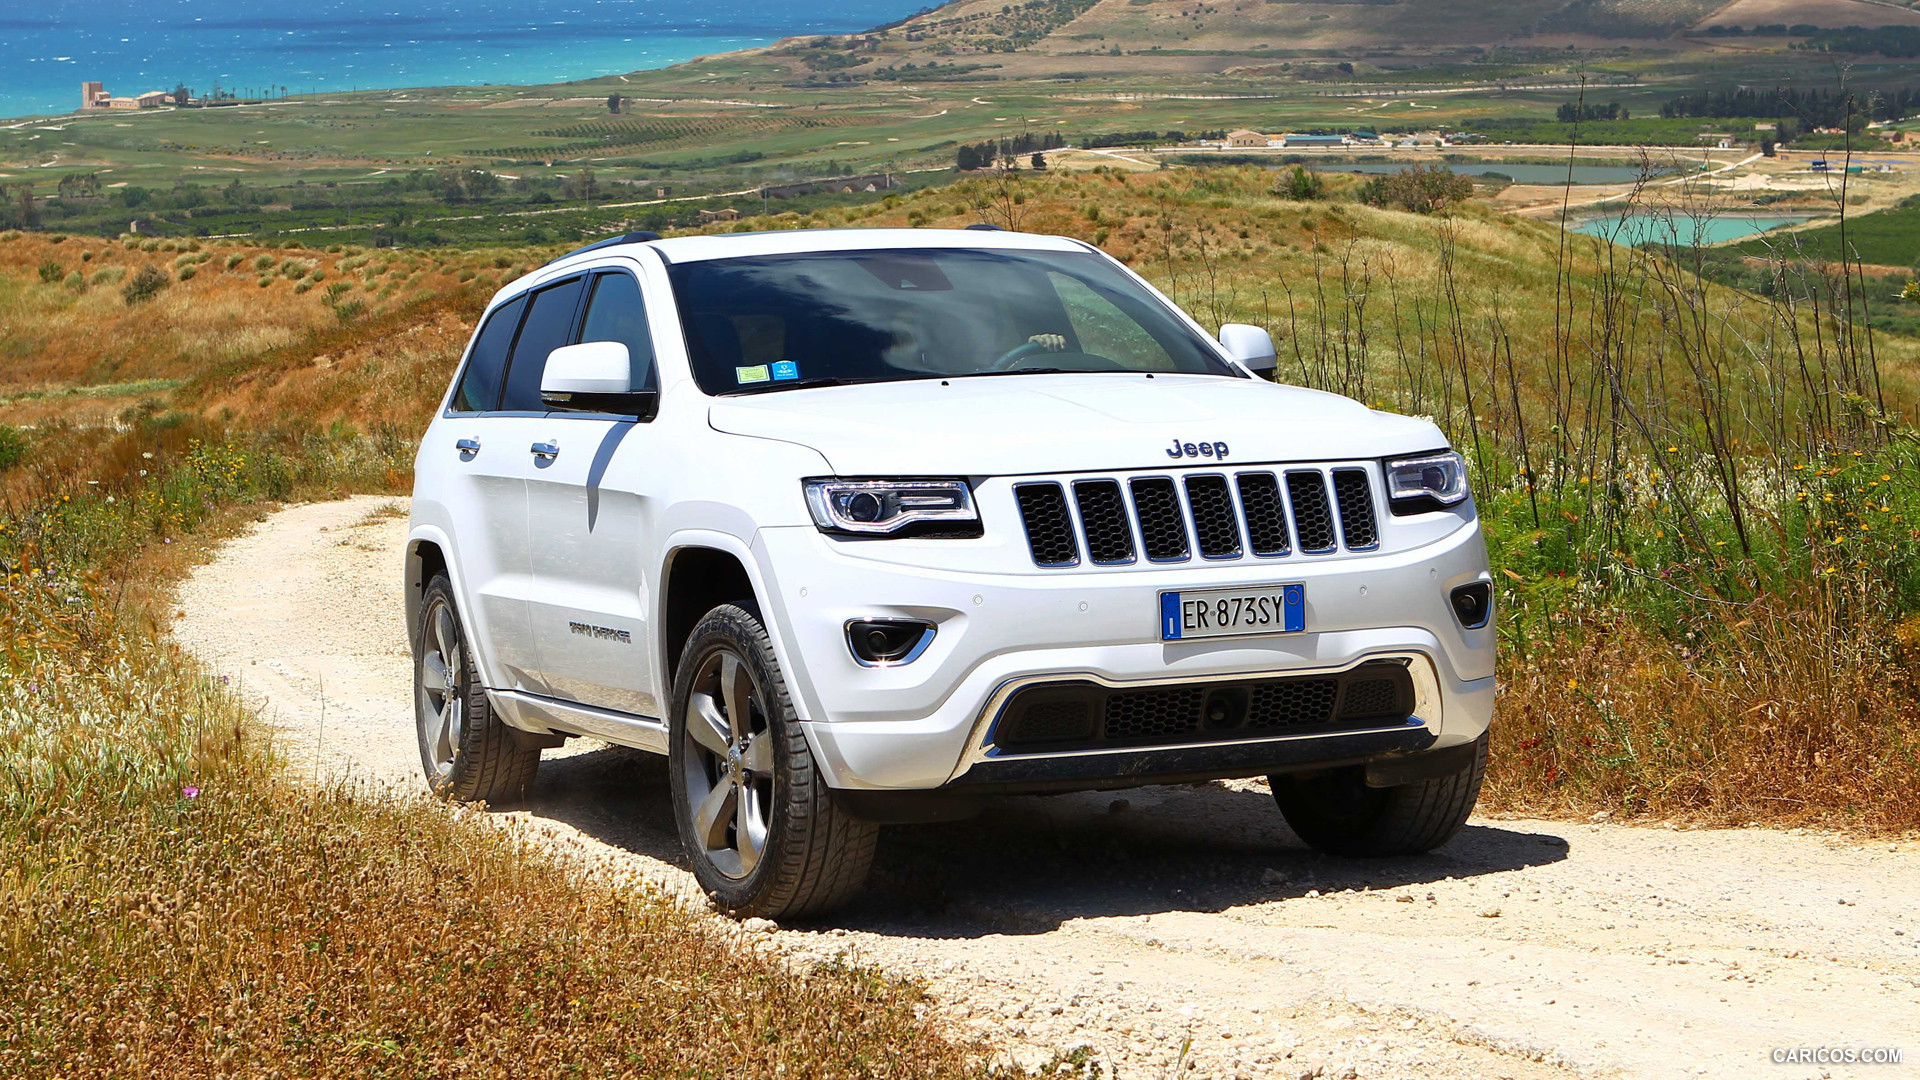 jeep grand cherokee eu version picture 108648 jeep photo gallery. Black Bedroom Furniture Sets. Home Design Ideas